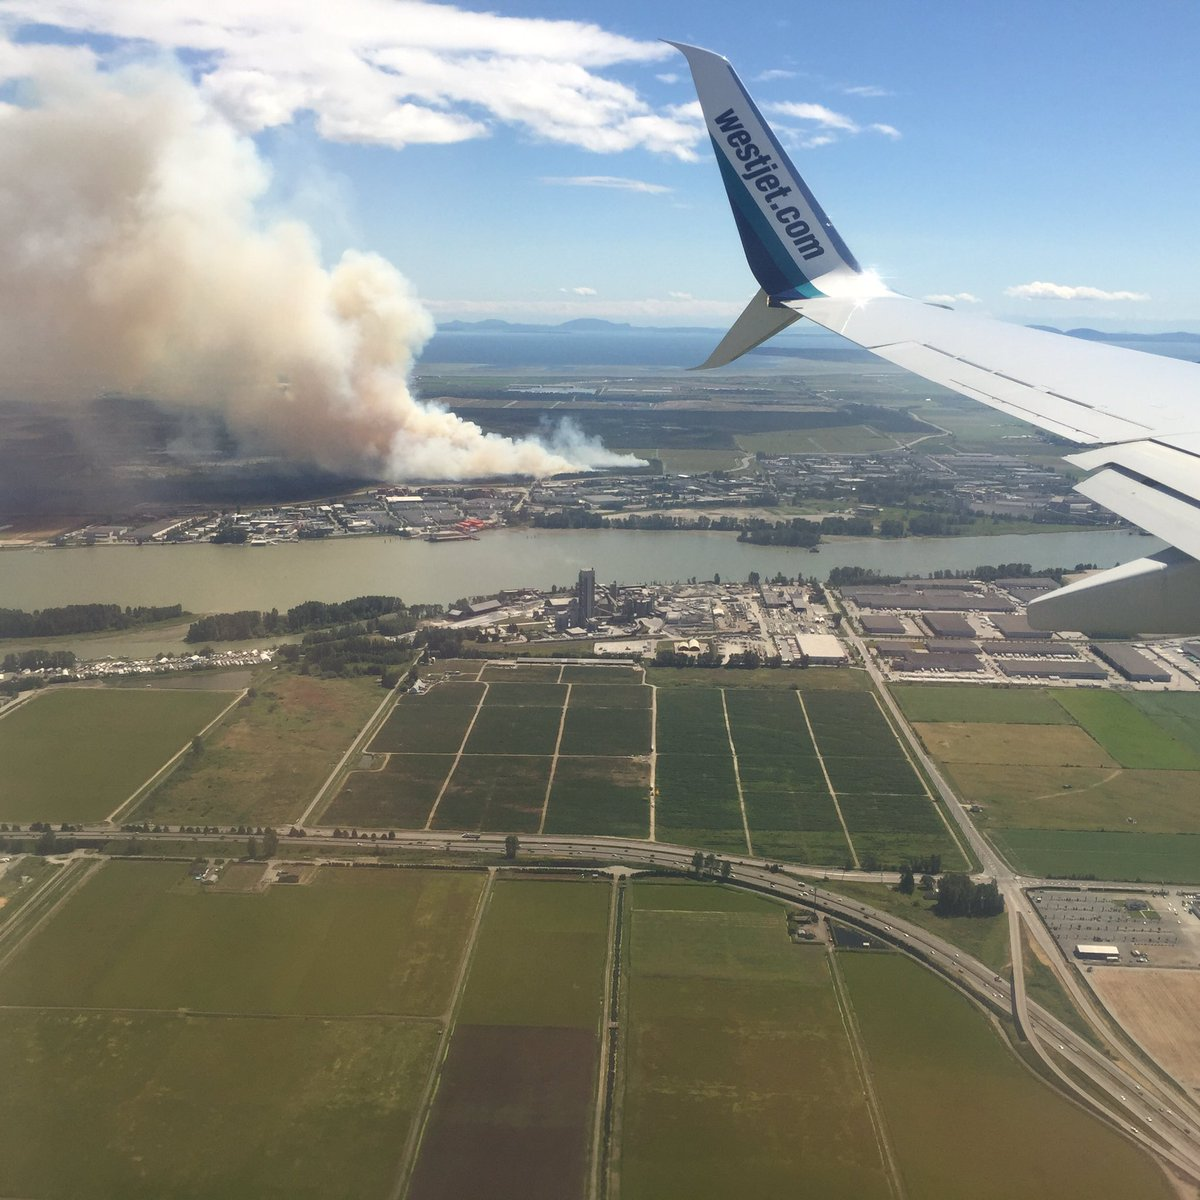 Took this on approach into #YVR The 10 #burnsbog fire now 10 hectares. @GlobalBC @BC1 https://t.co/pmrpXEFhXK